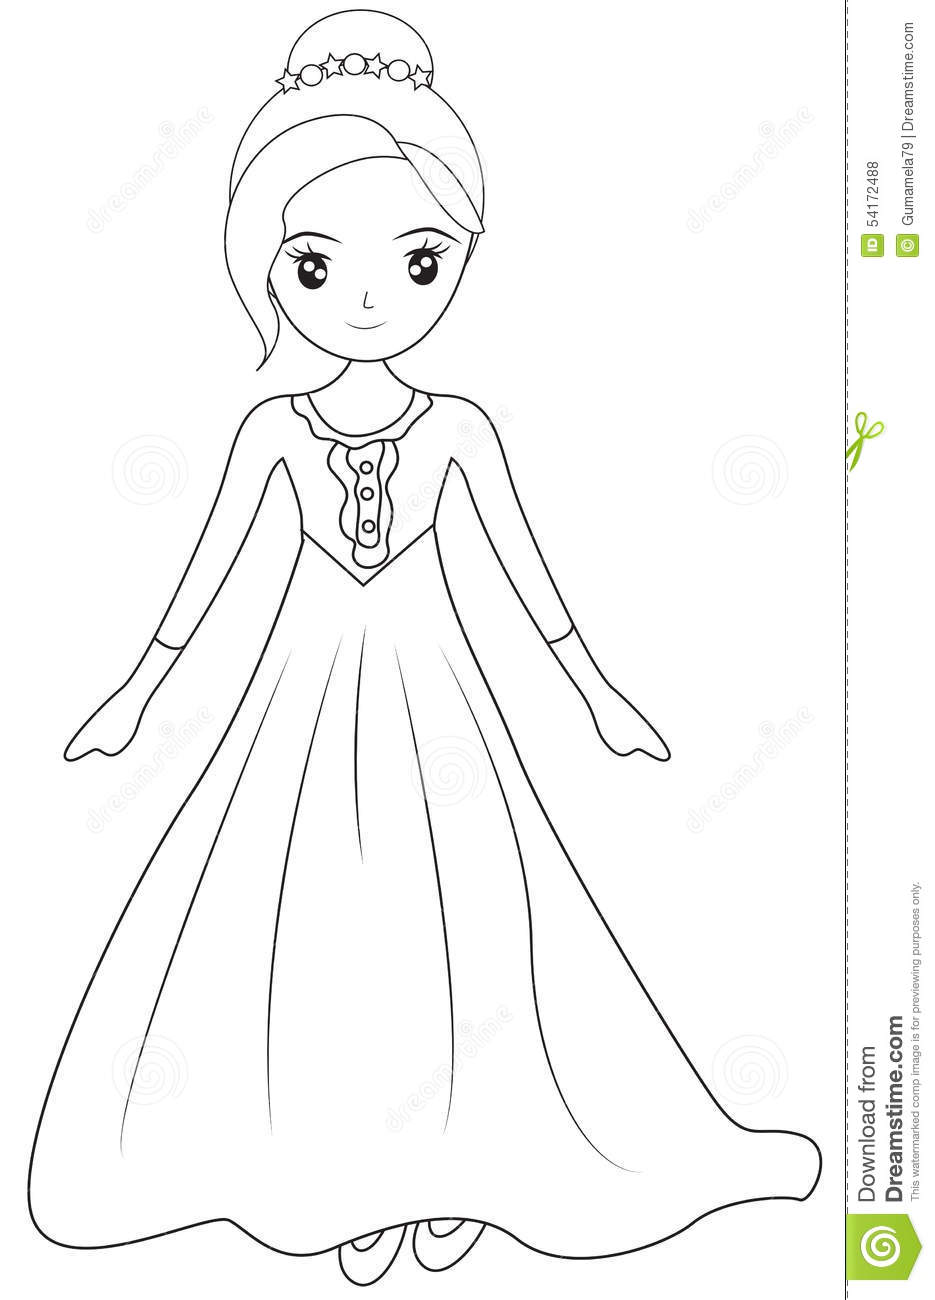 dress coloring pictures gown coloring download gown coloring for free 2019 pictures dress coloring